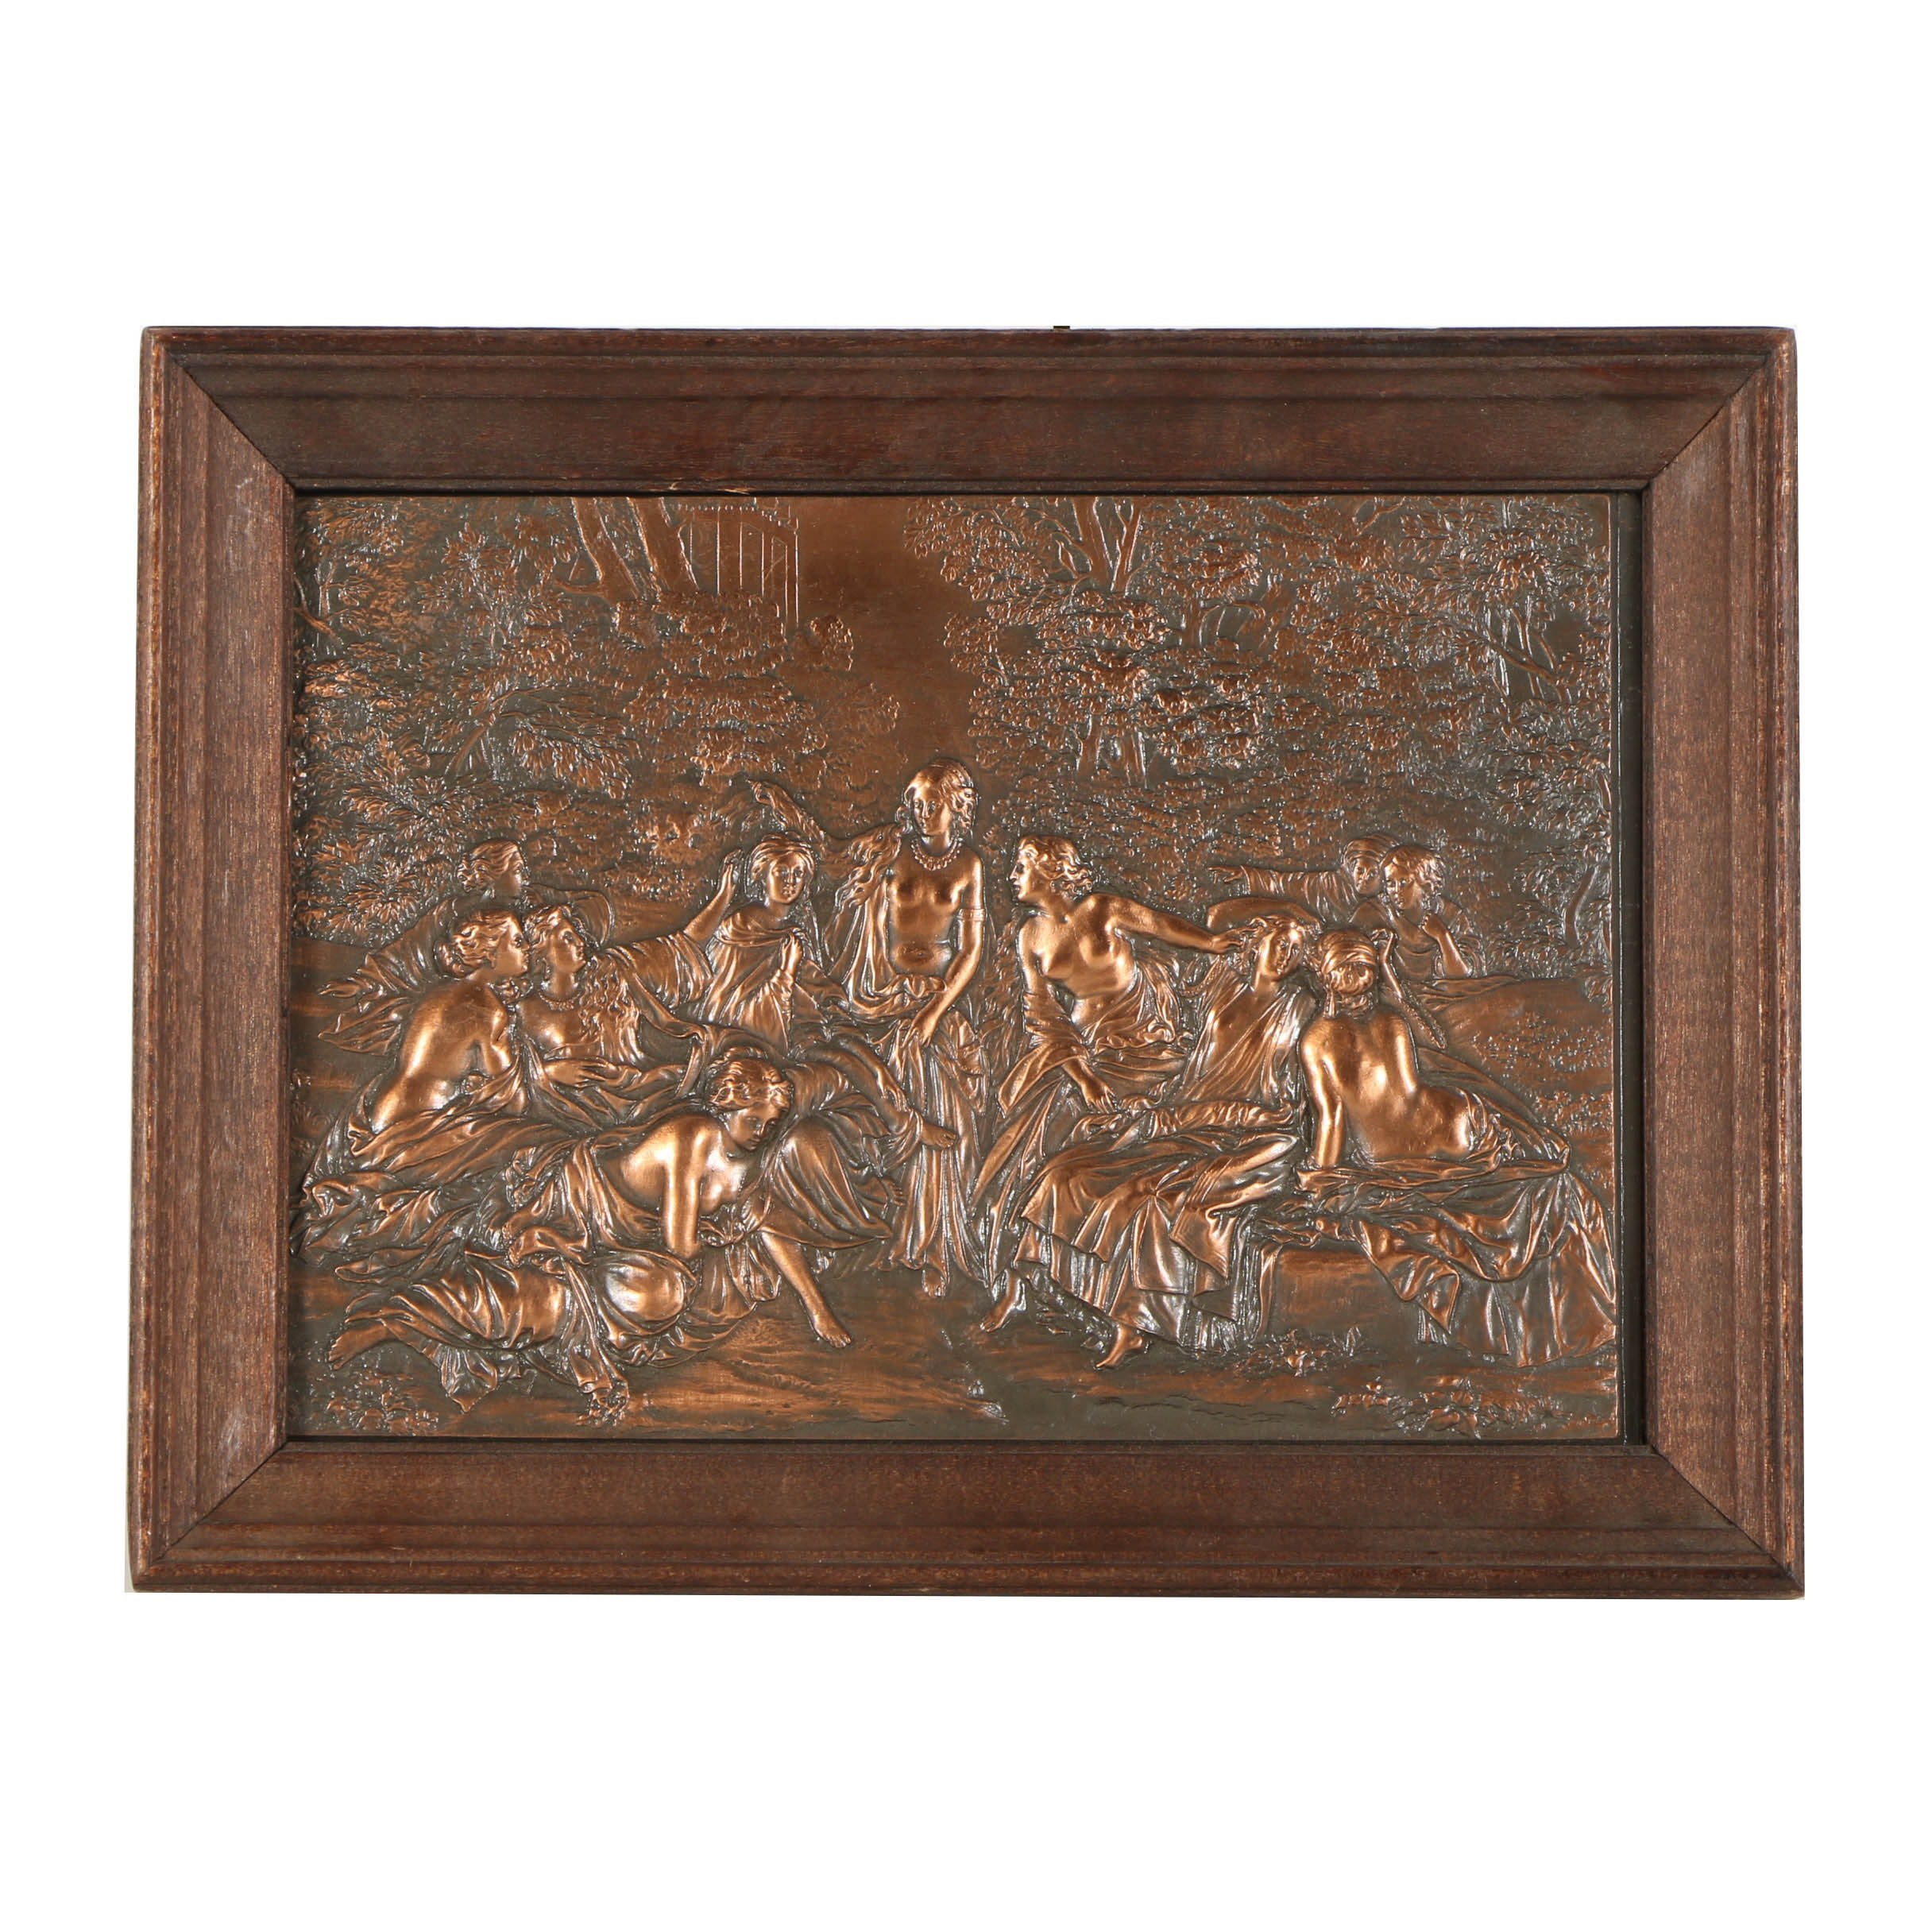 Copper Relief Sculpture of the Muses